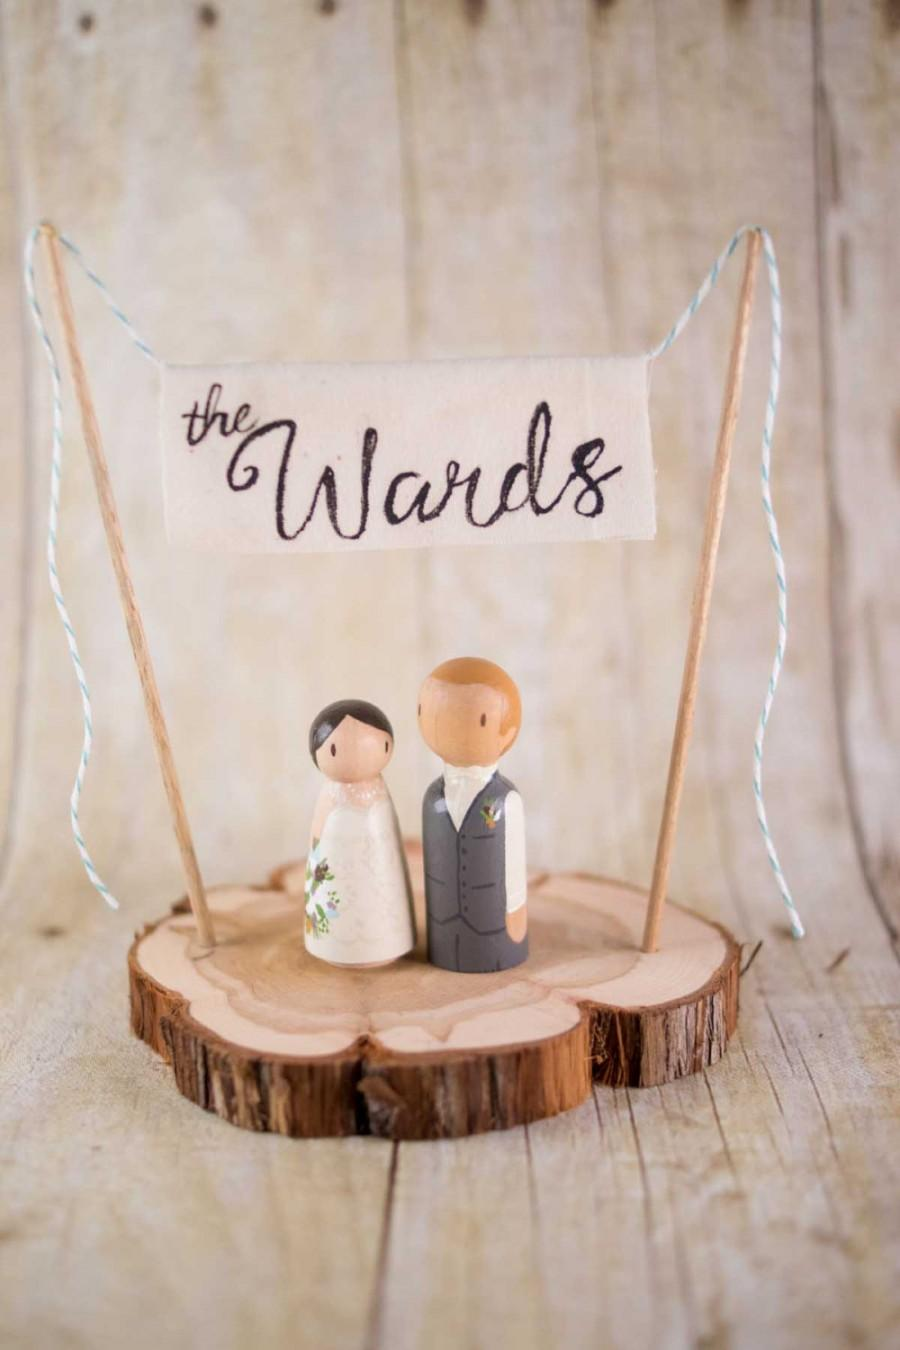 Custom Last Name Cake Topper